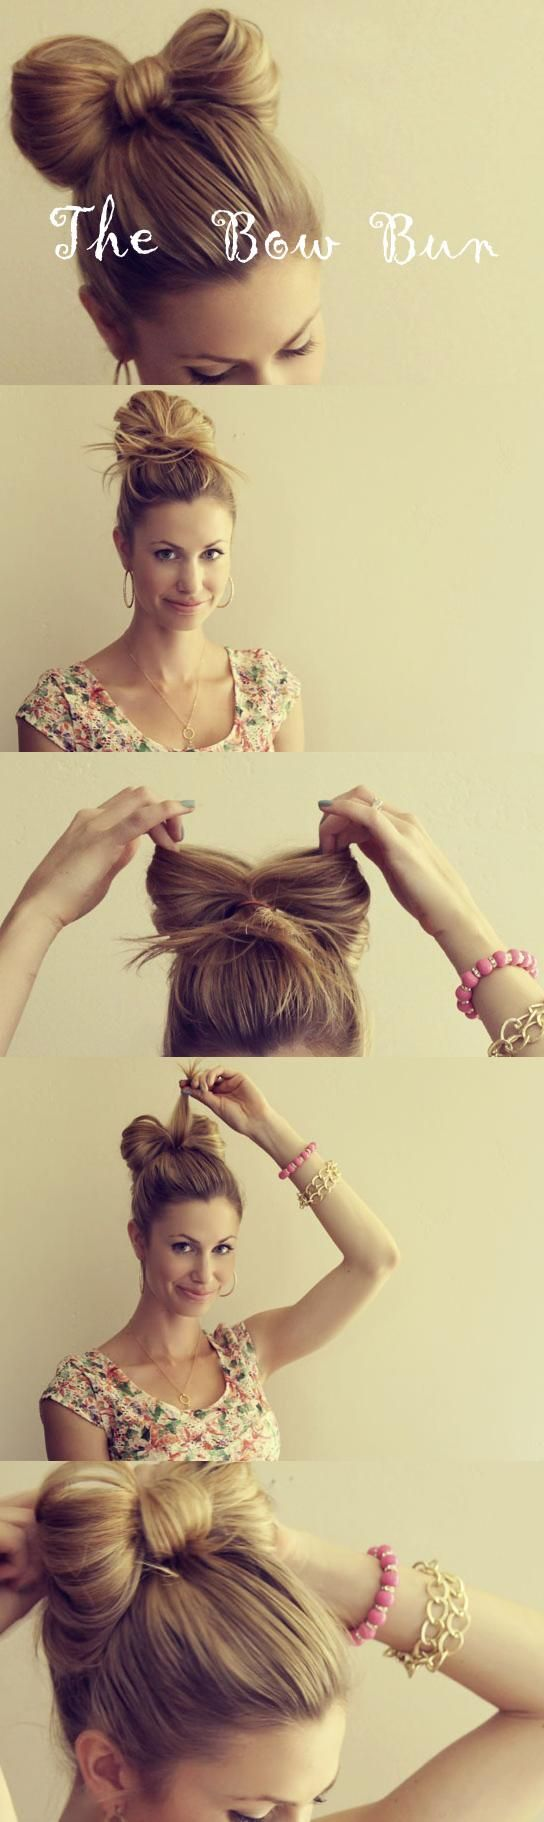 Hairbows, Bows Buns, Long Hair, Bow Buns, Hairstyle, Buns Tutorial, Hair Bows, Hair Style, Make A Bow